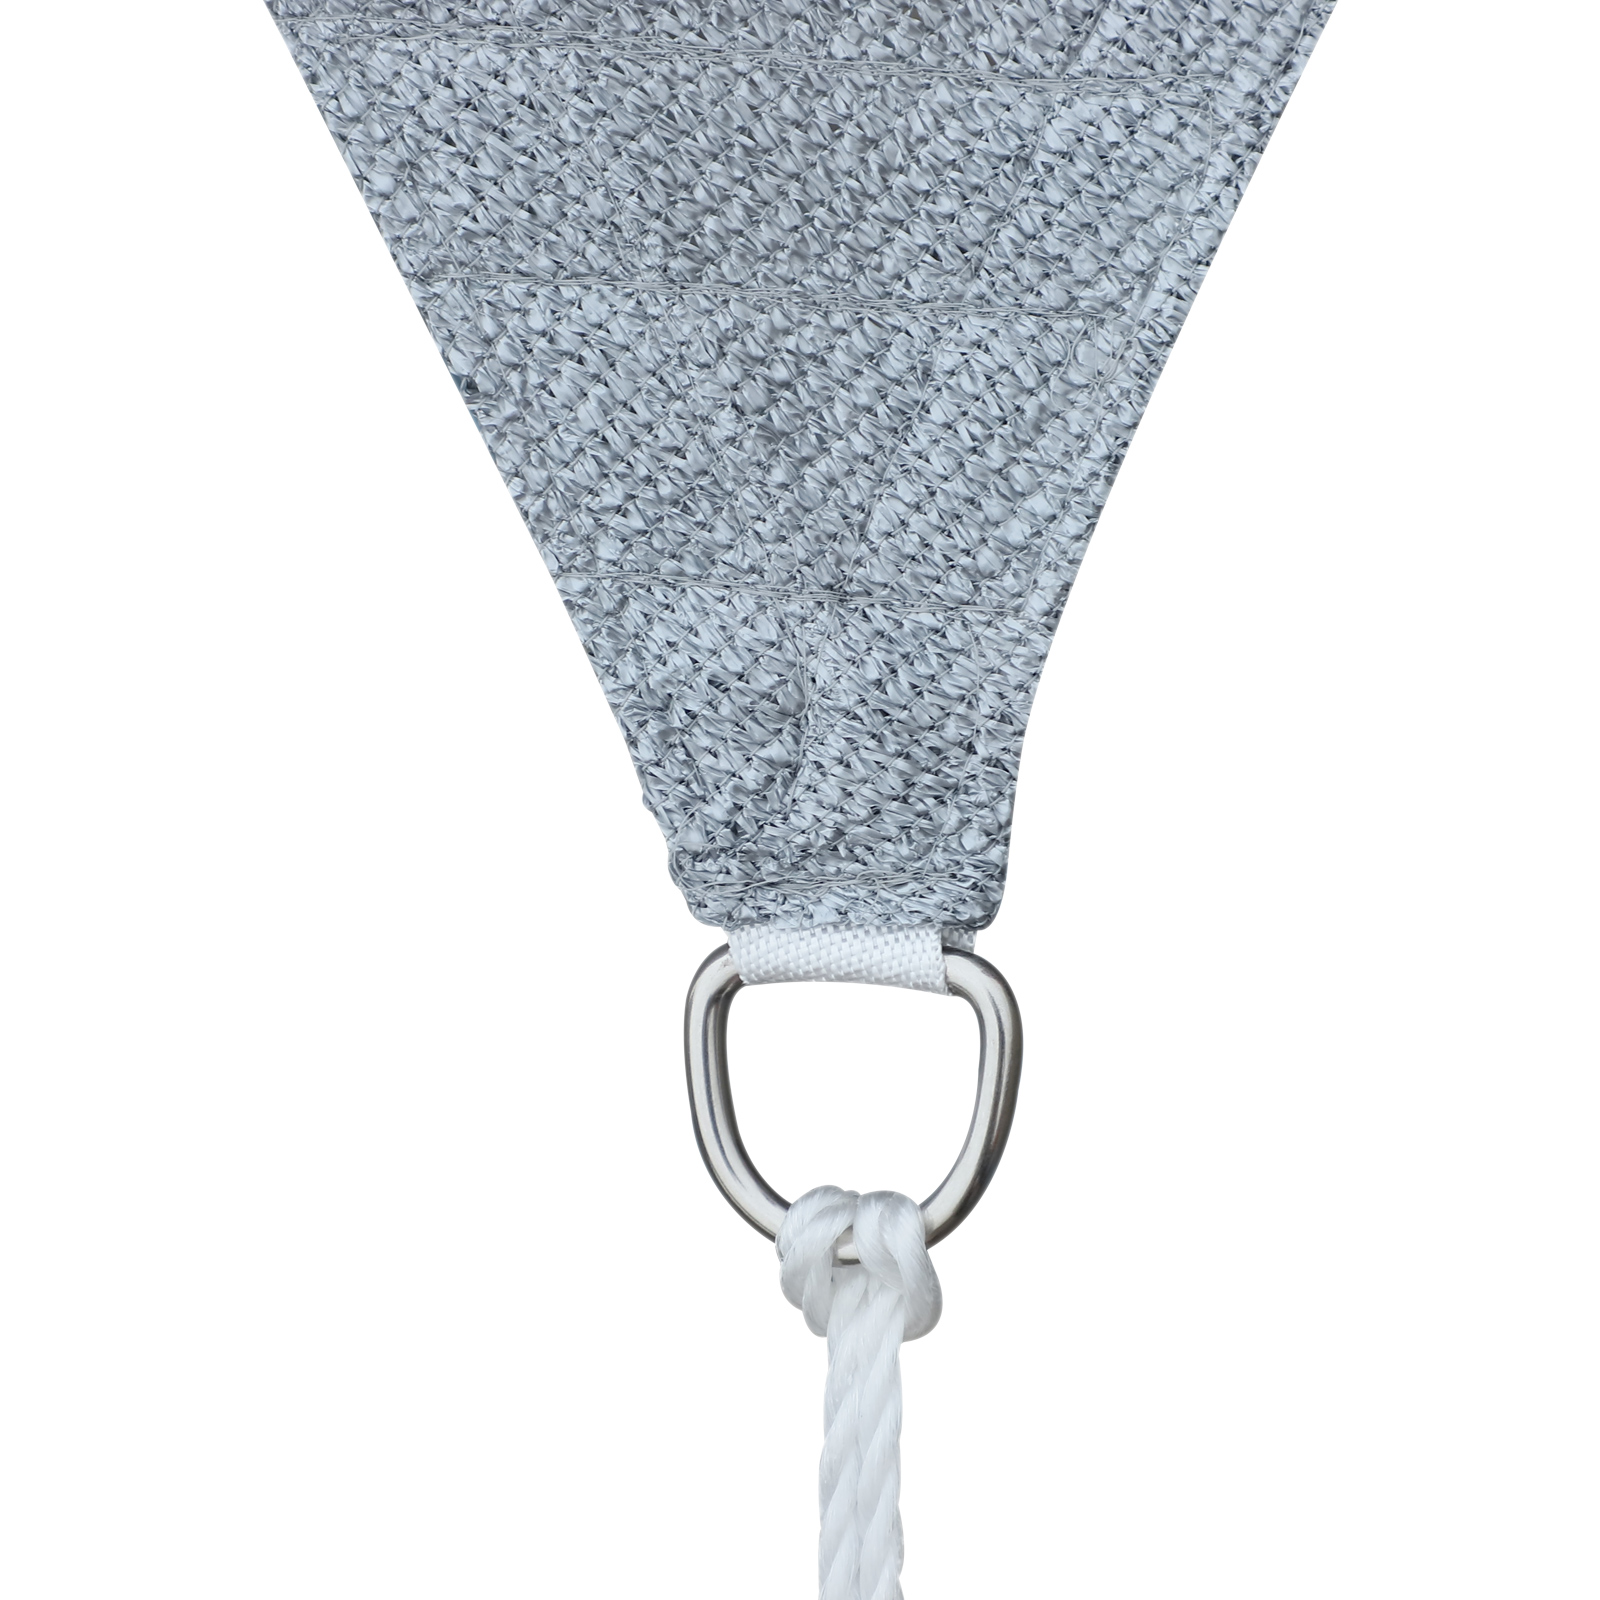 Sun-Shade-Sail-UV-Top-Cover-Outdoor-Canopy-Patio-Triangle-Square-Rectangle-w-Bag thumbnail 5